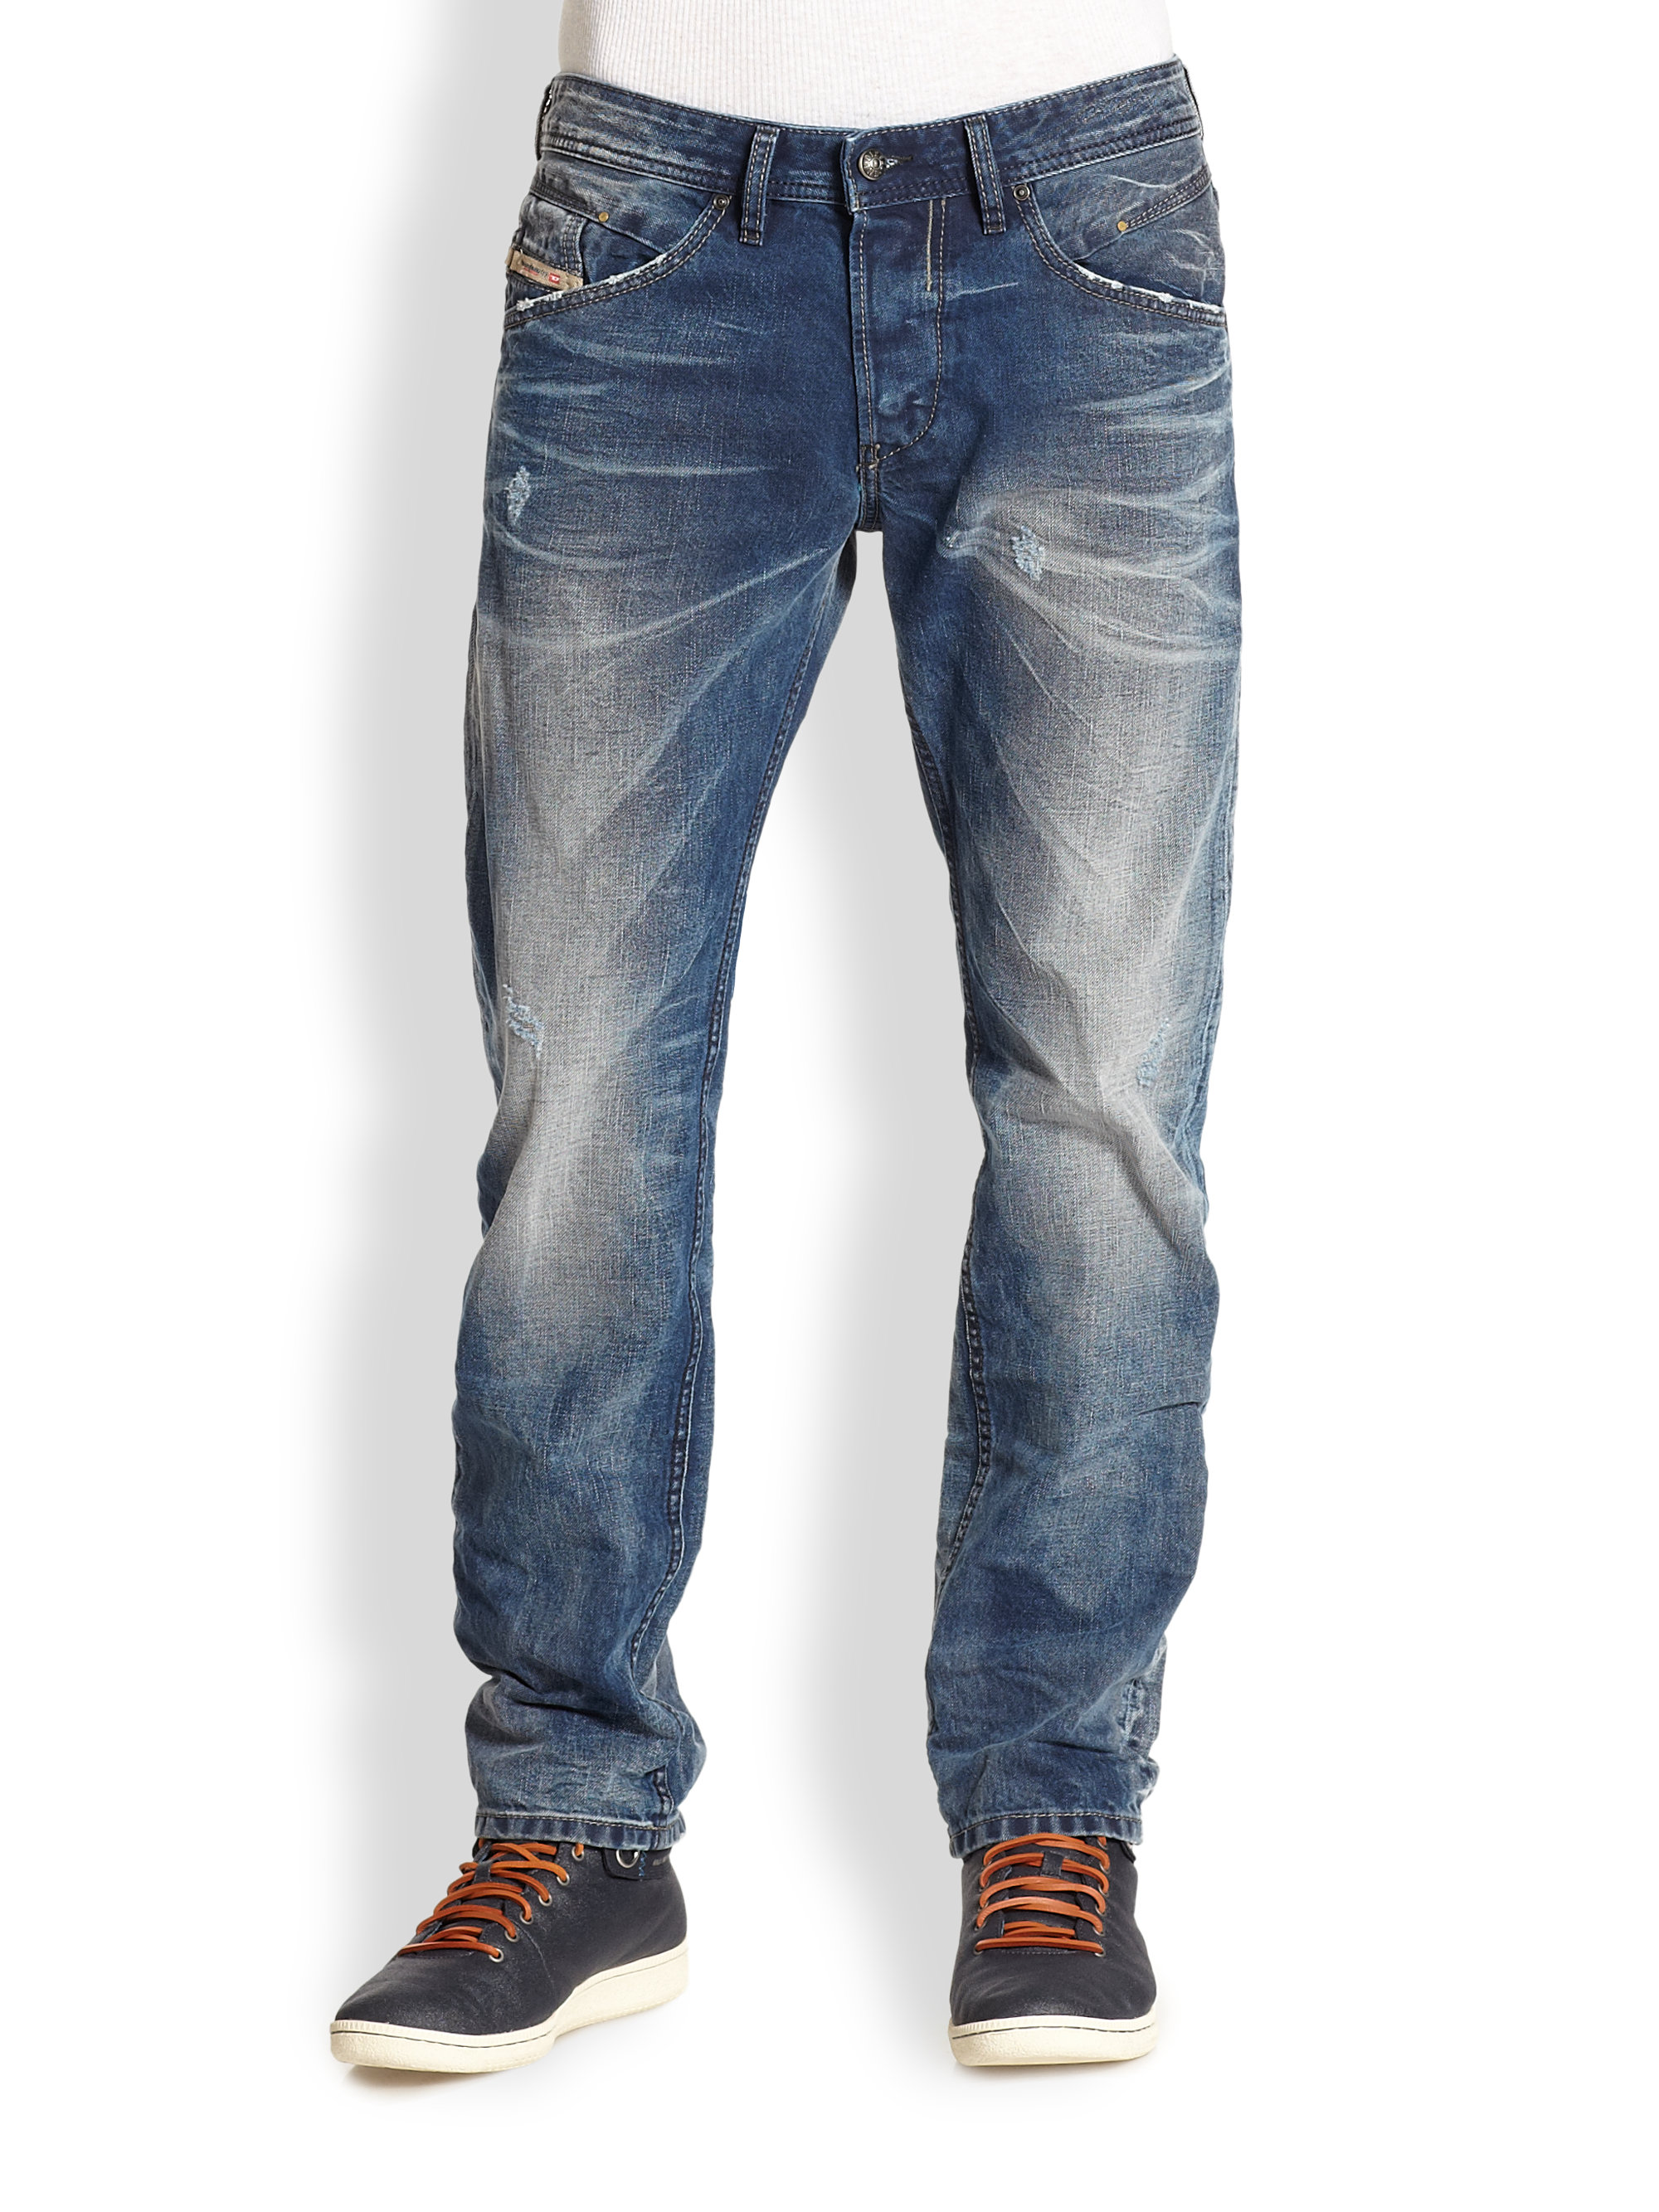 Lyst Diesel Belther Light Wash Jeans In Blue For Men